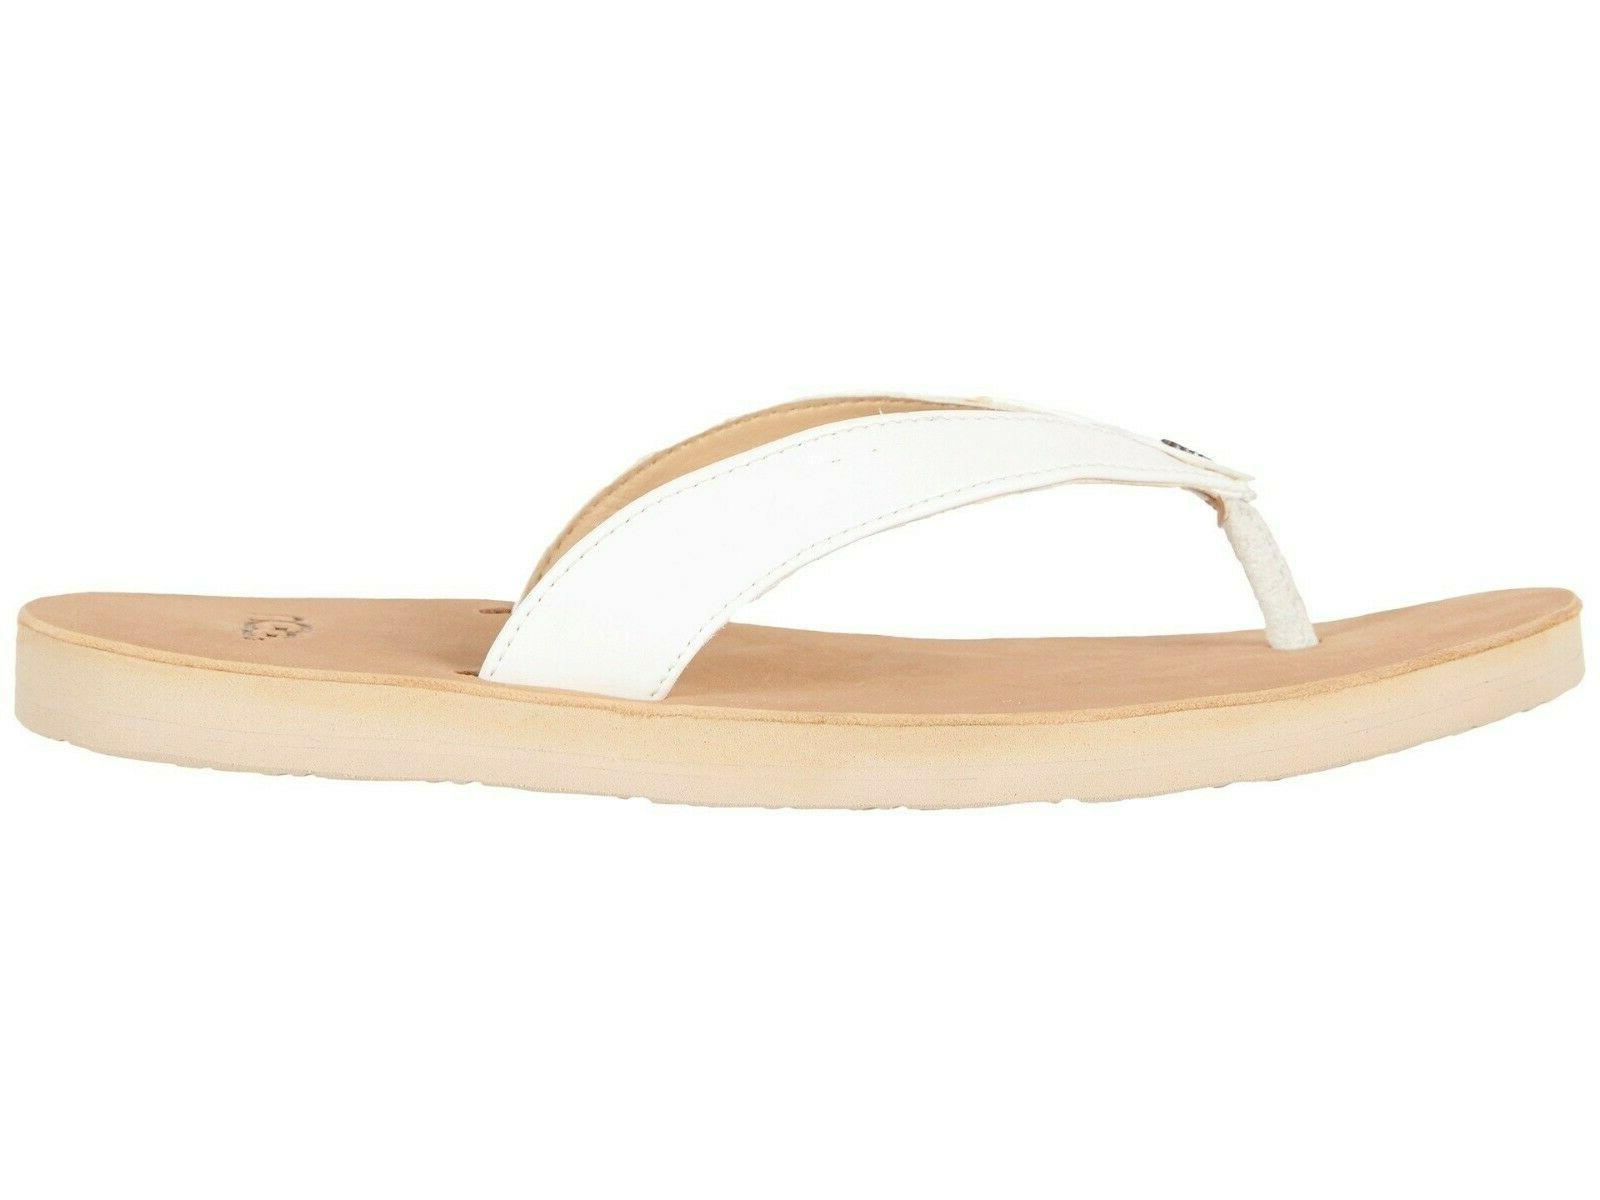 NEW UGG White Tawney Sandals Shoes